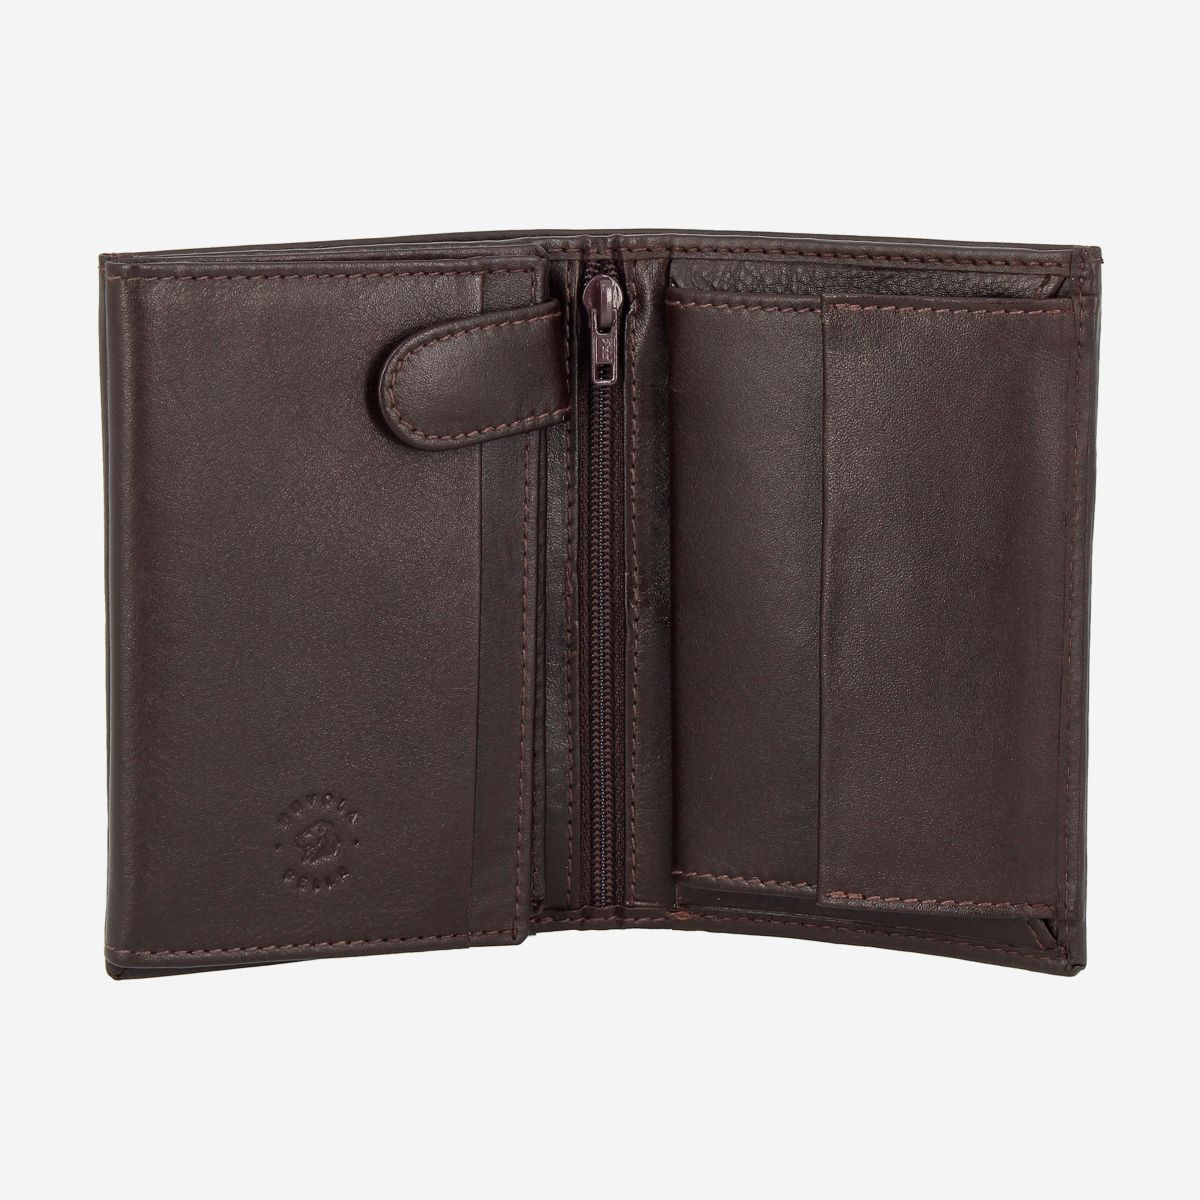 NUVOLA PELLE Mens Vertical Wallet With Coin Pocket - Dark Brown